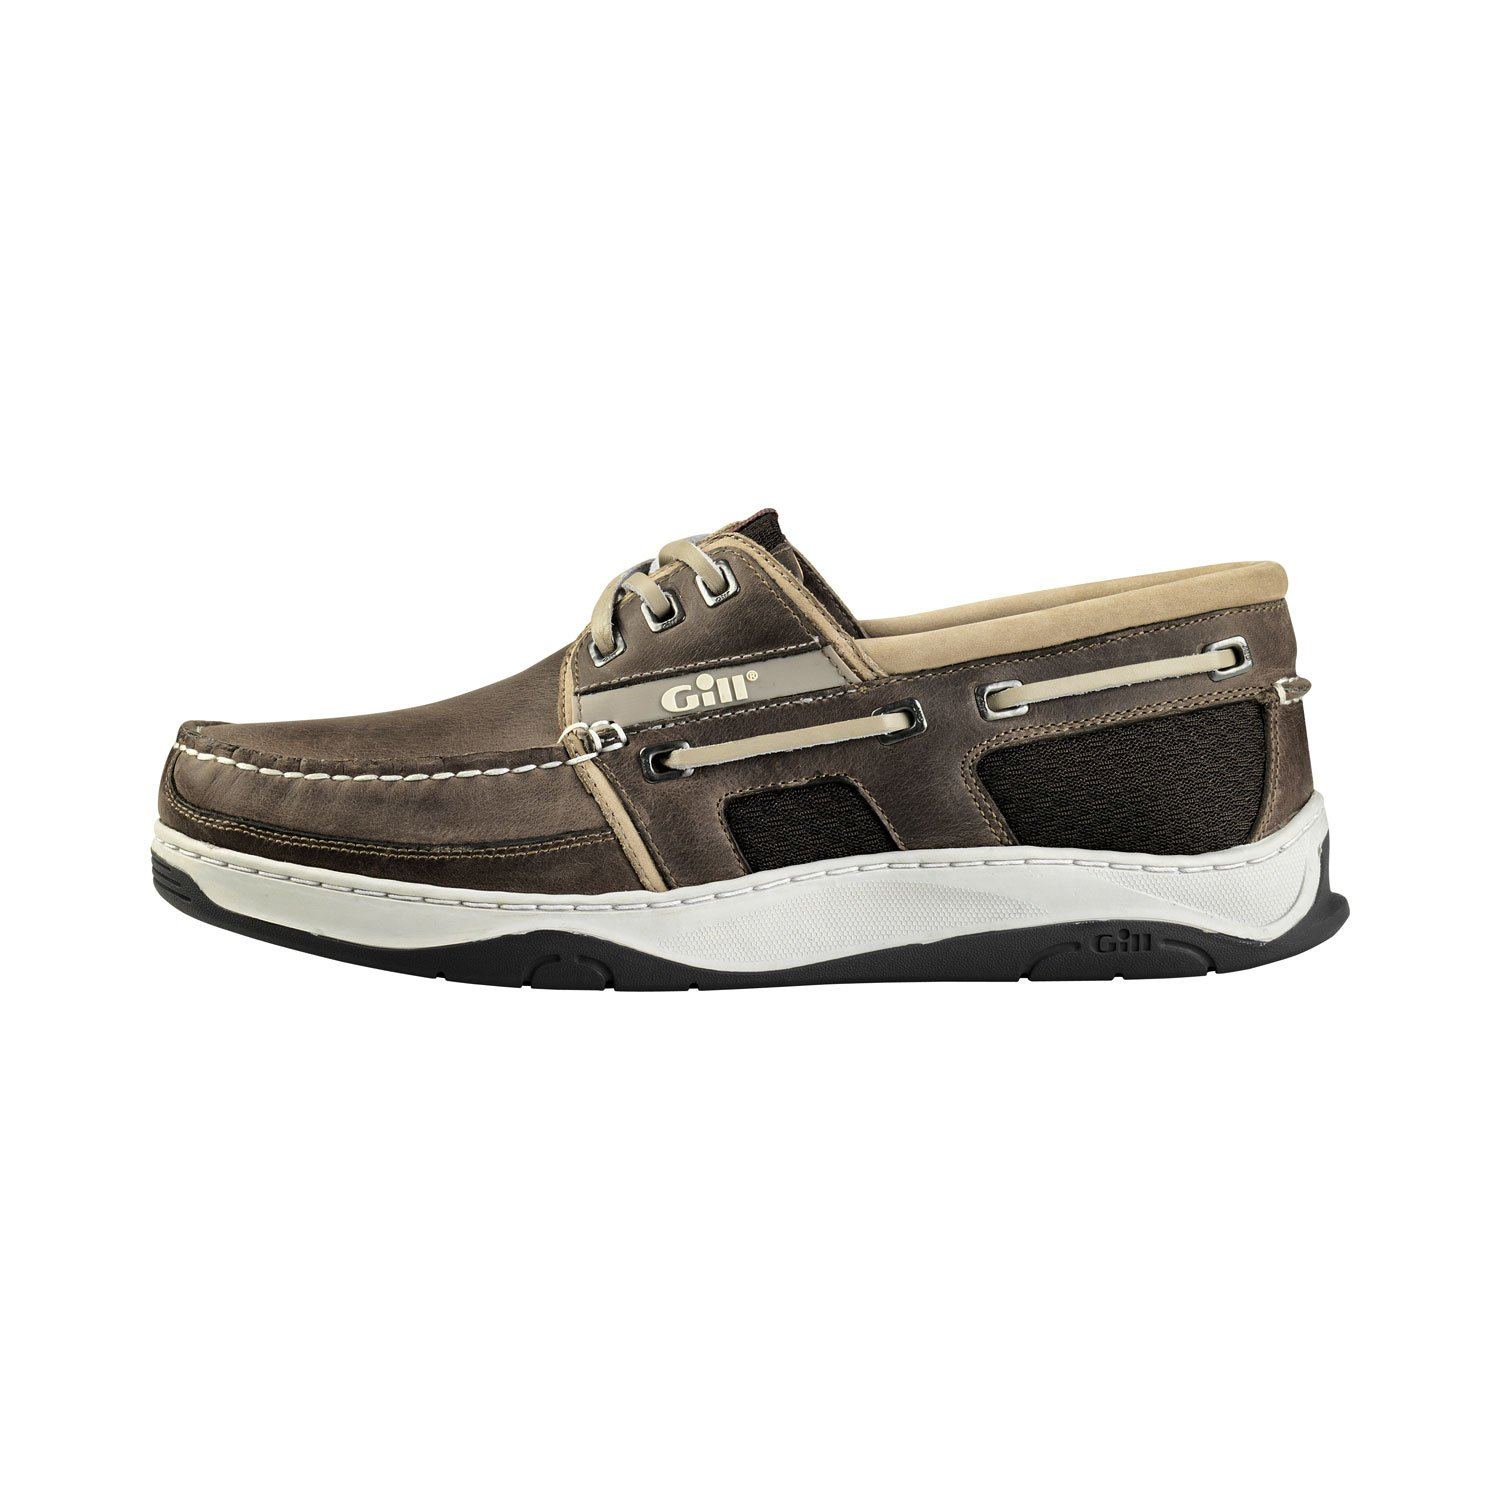 Gill Newport 3 Eye Deck Shoe (43, Grey)